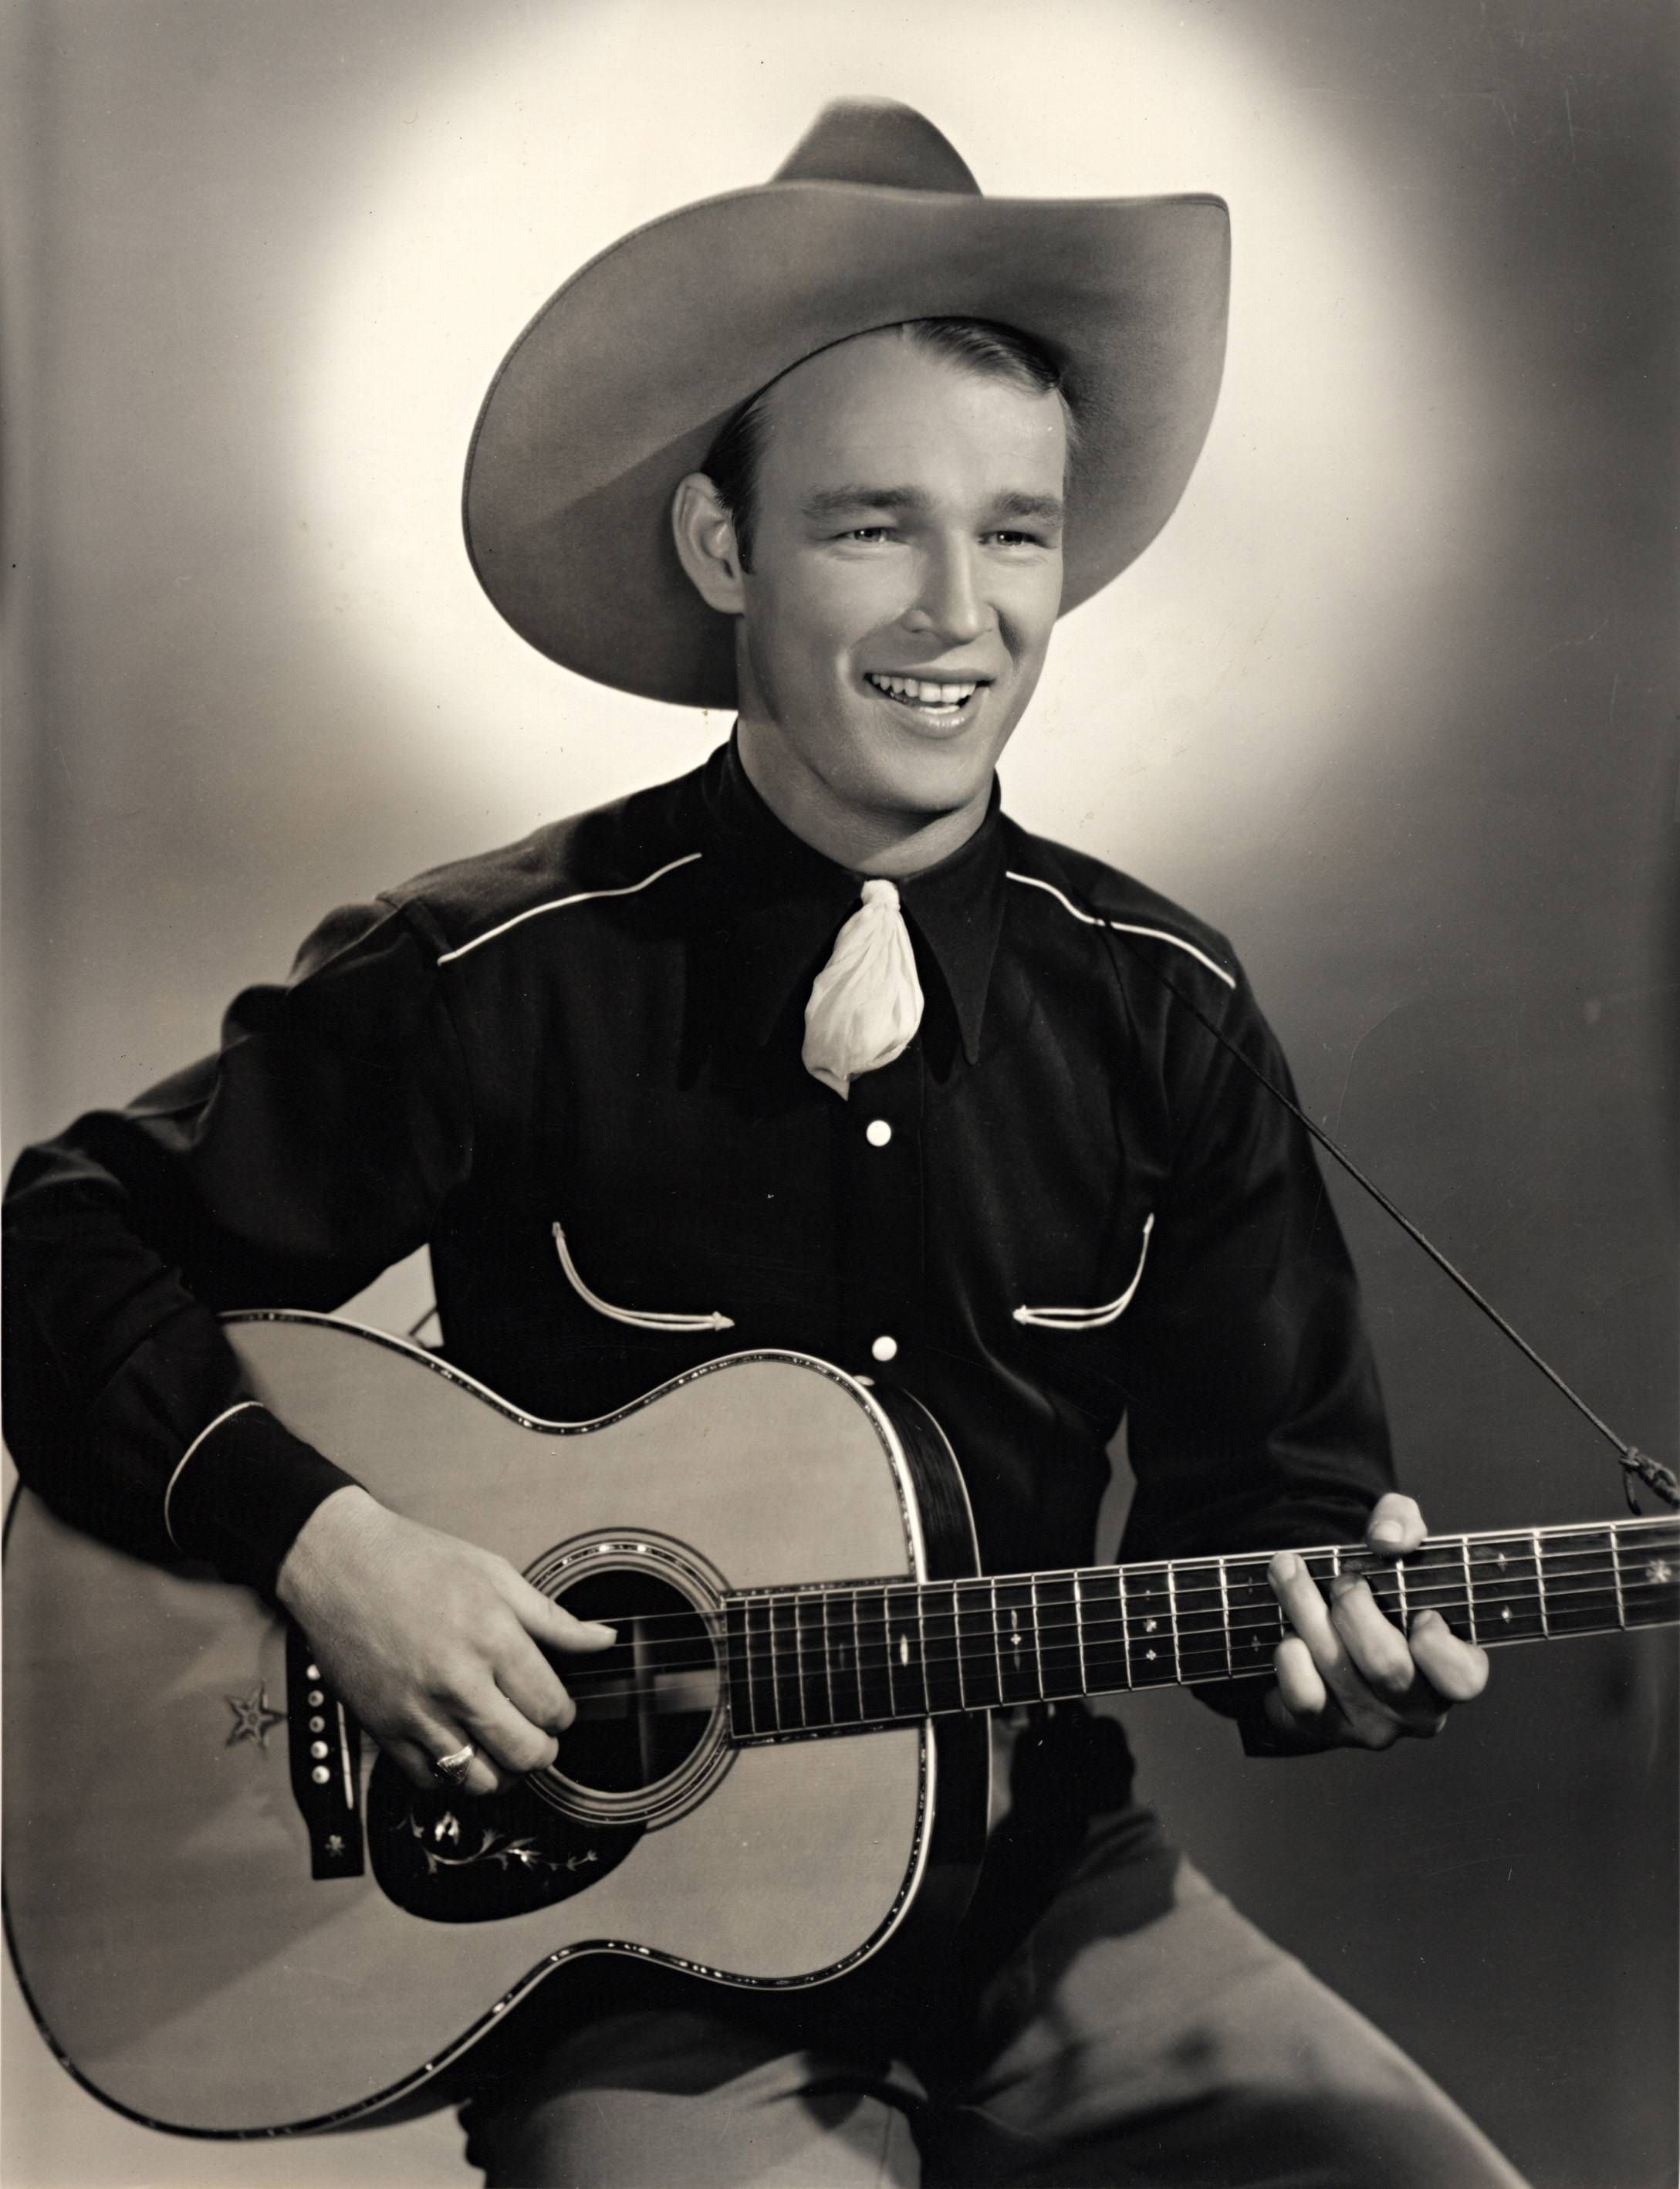 Roy Rogers Saturday morning at the movies